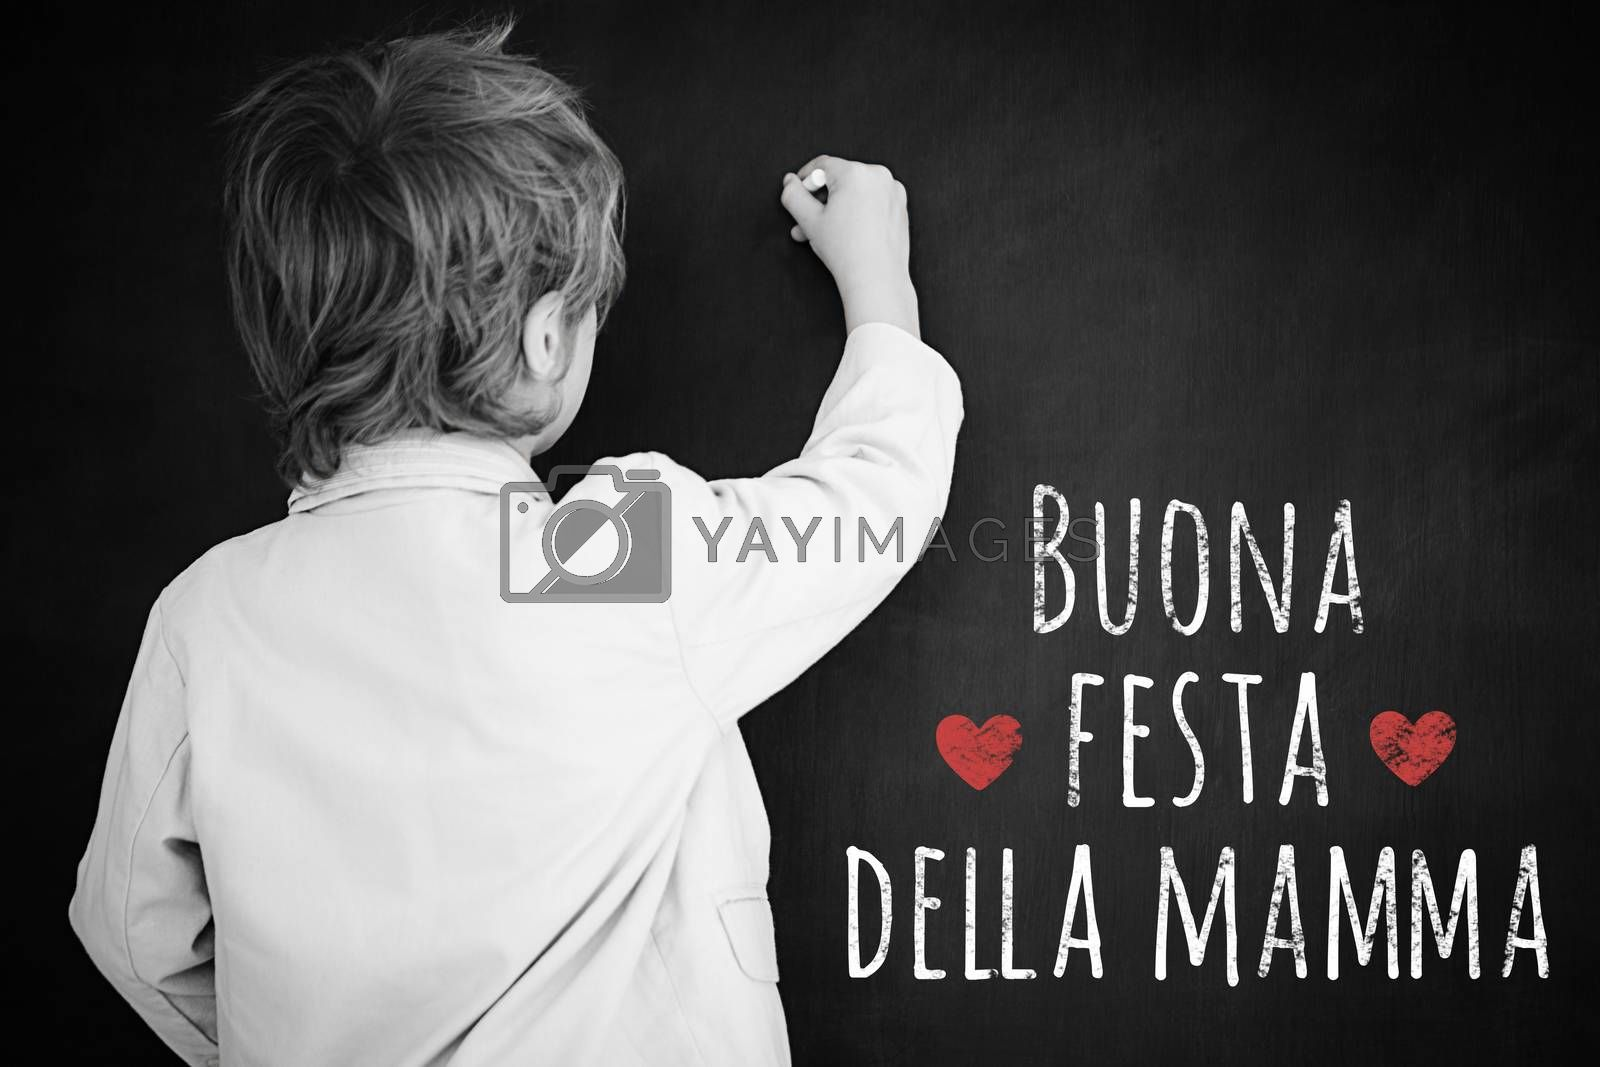 Schoolchild with blackboard against italian mothers day message